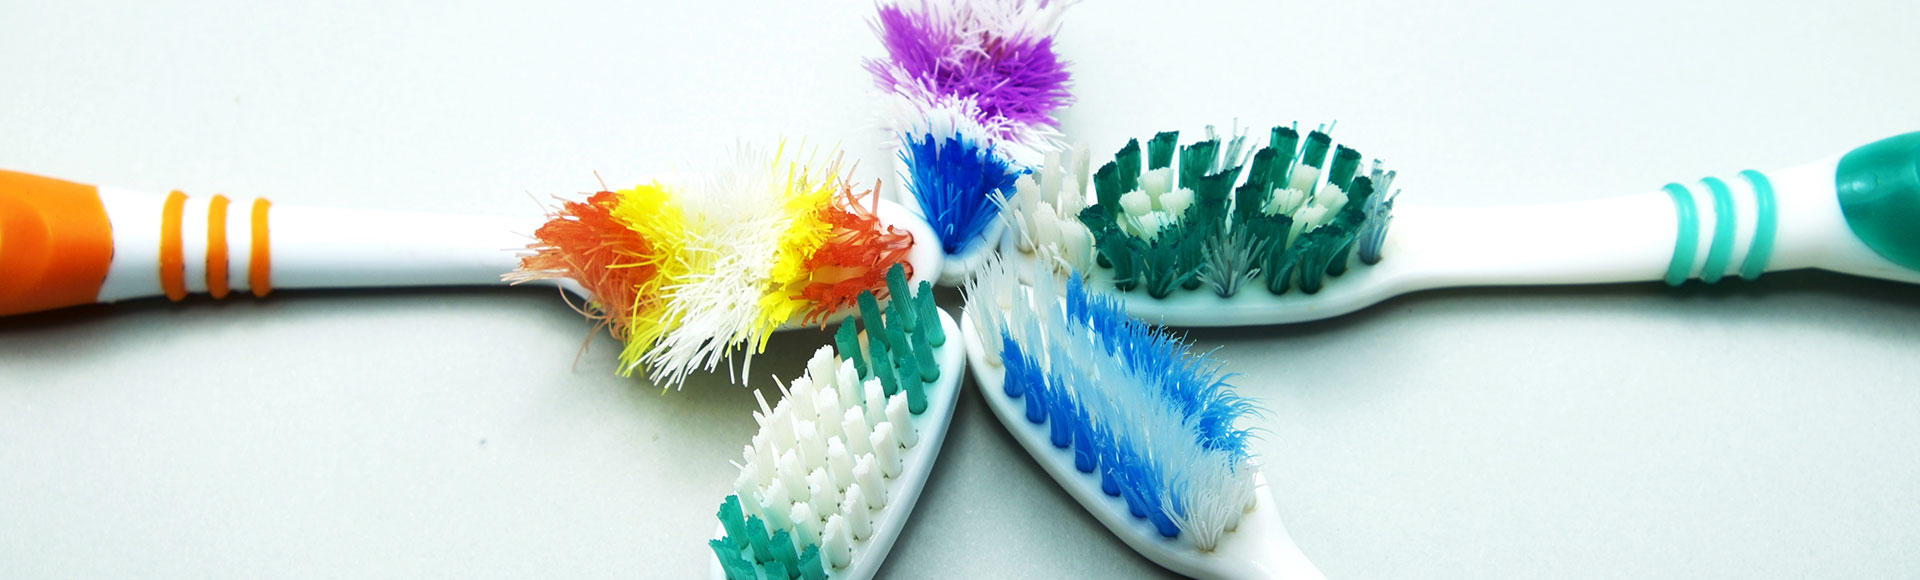 Tips for Choosing a Toothbrush